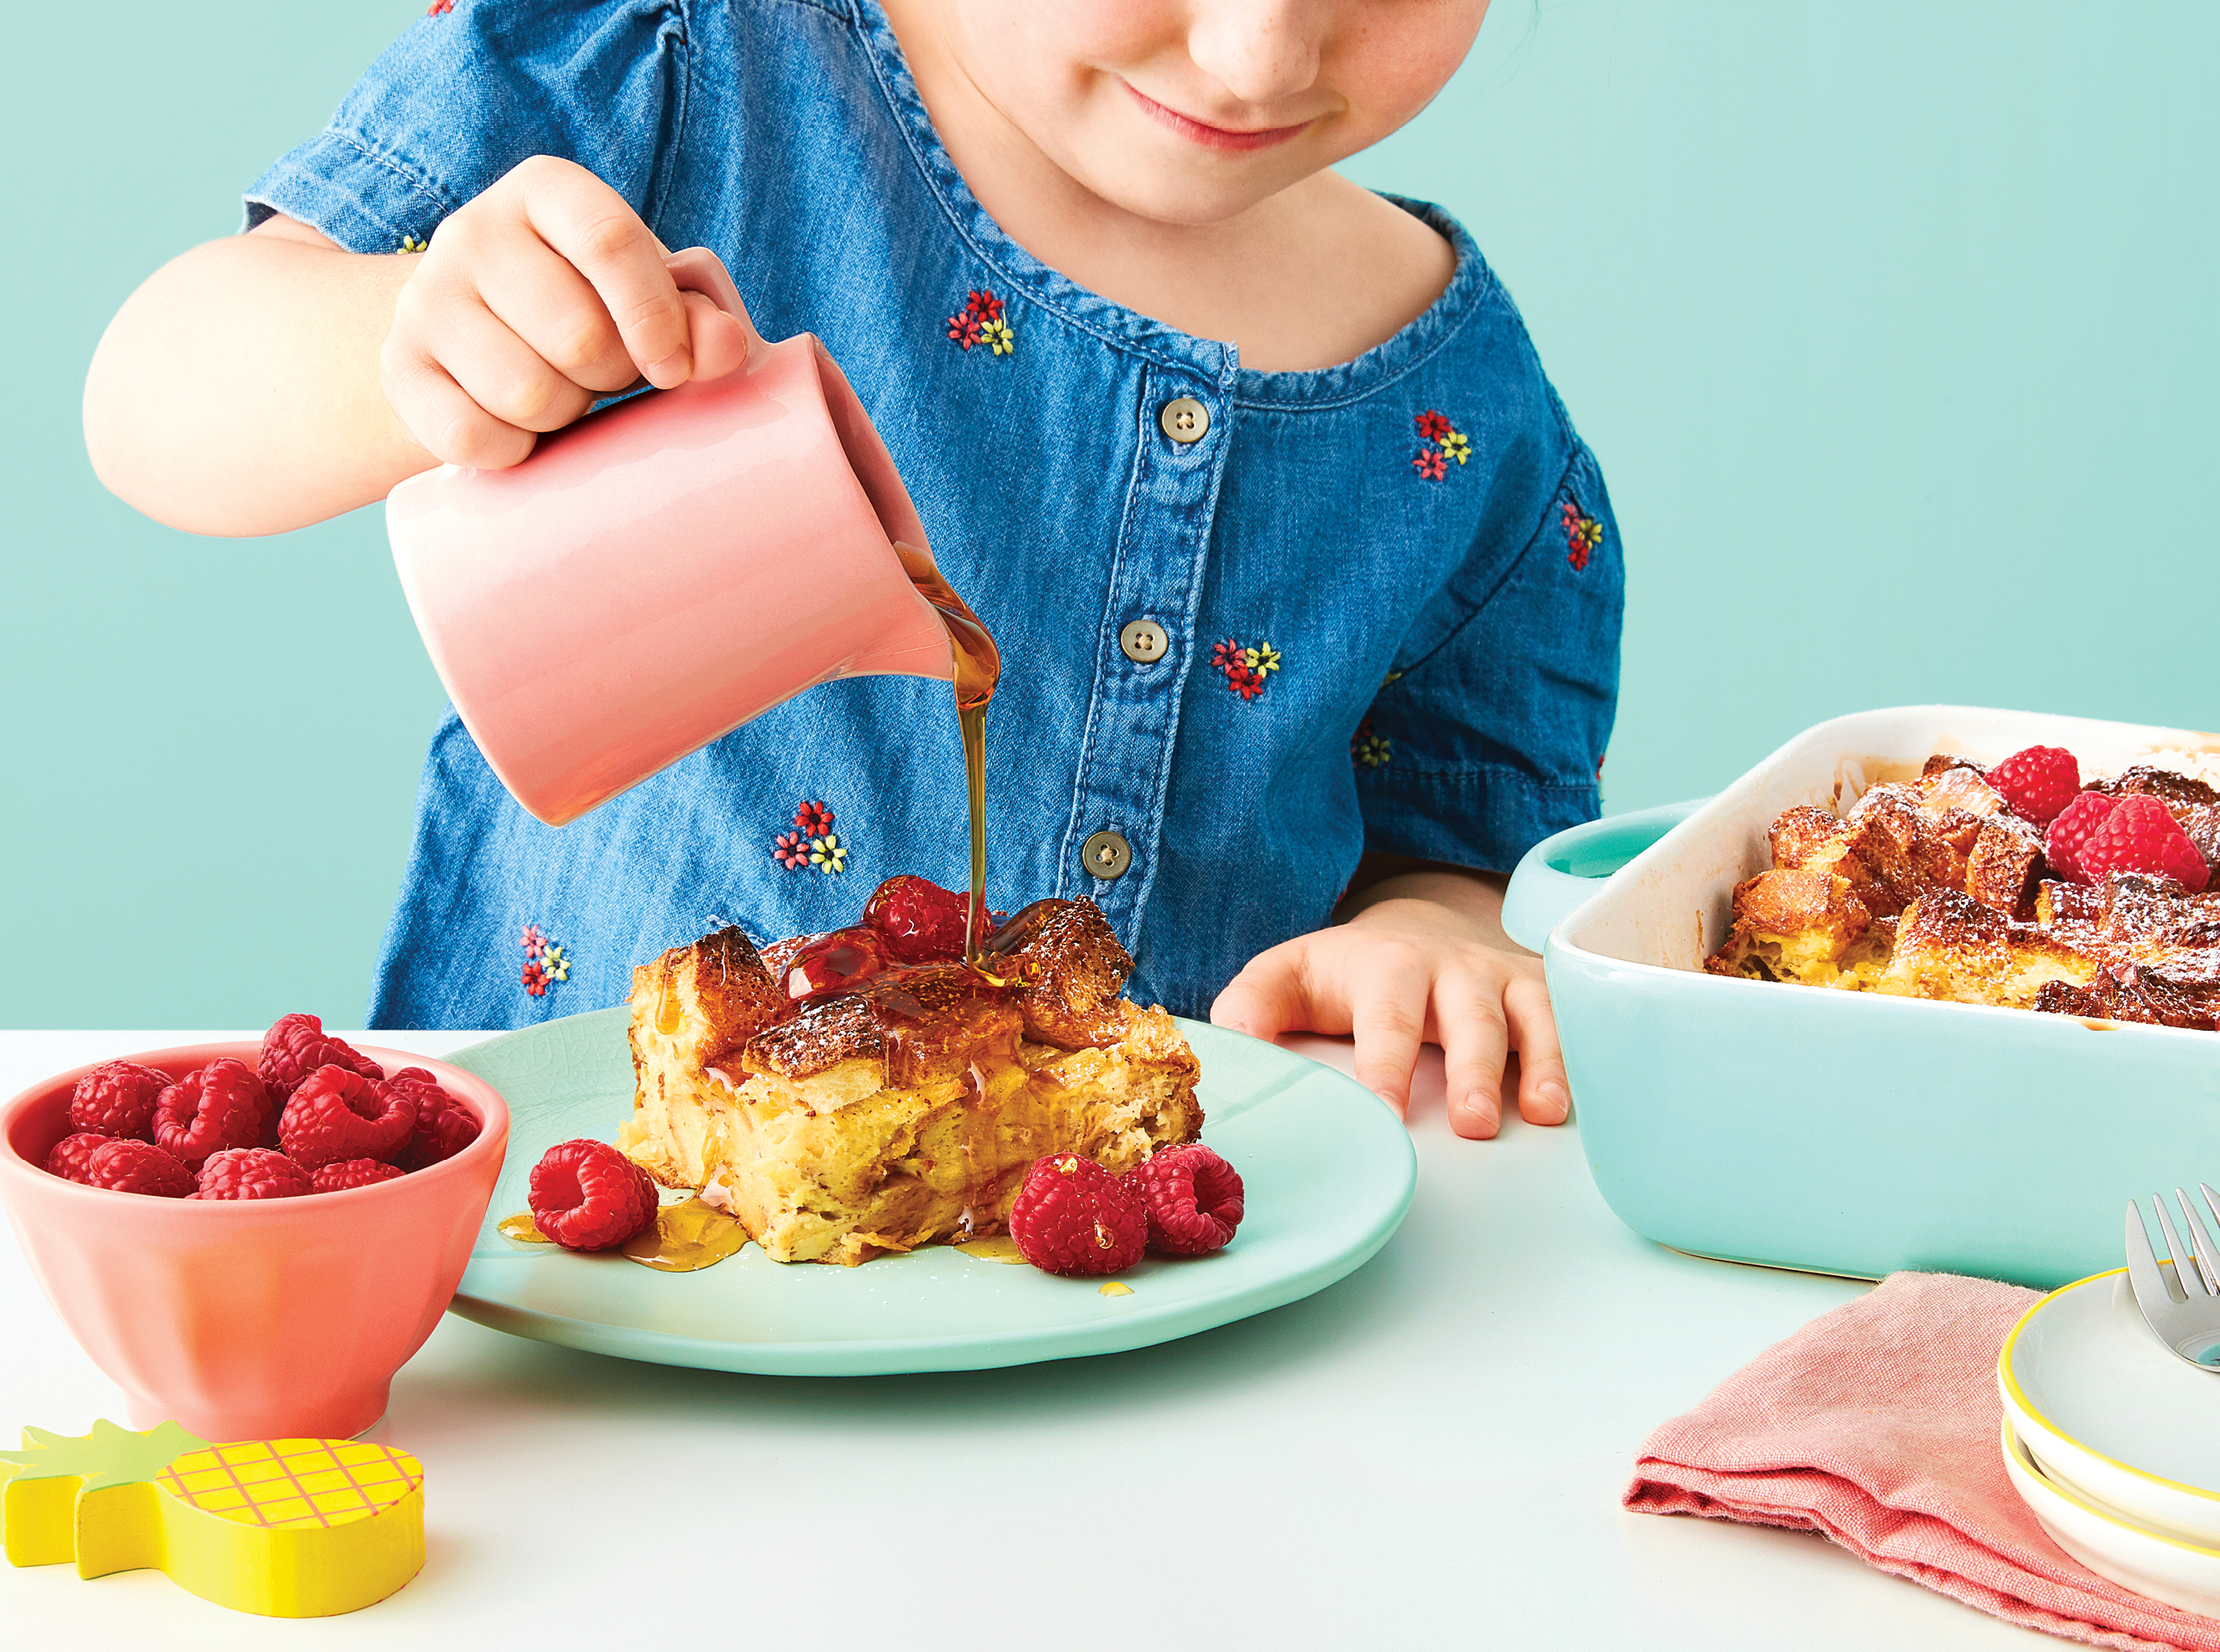 child pouring syrup on French toast